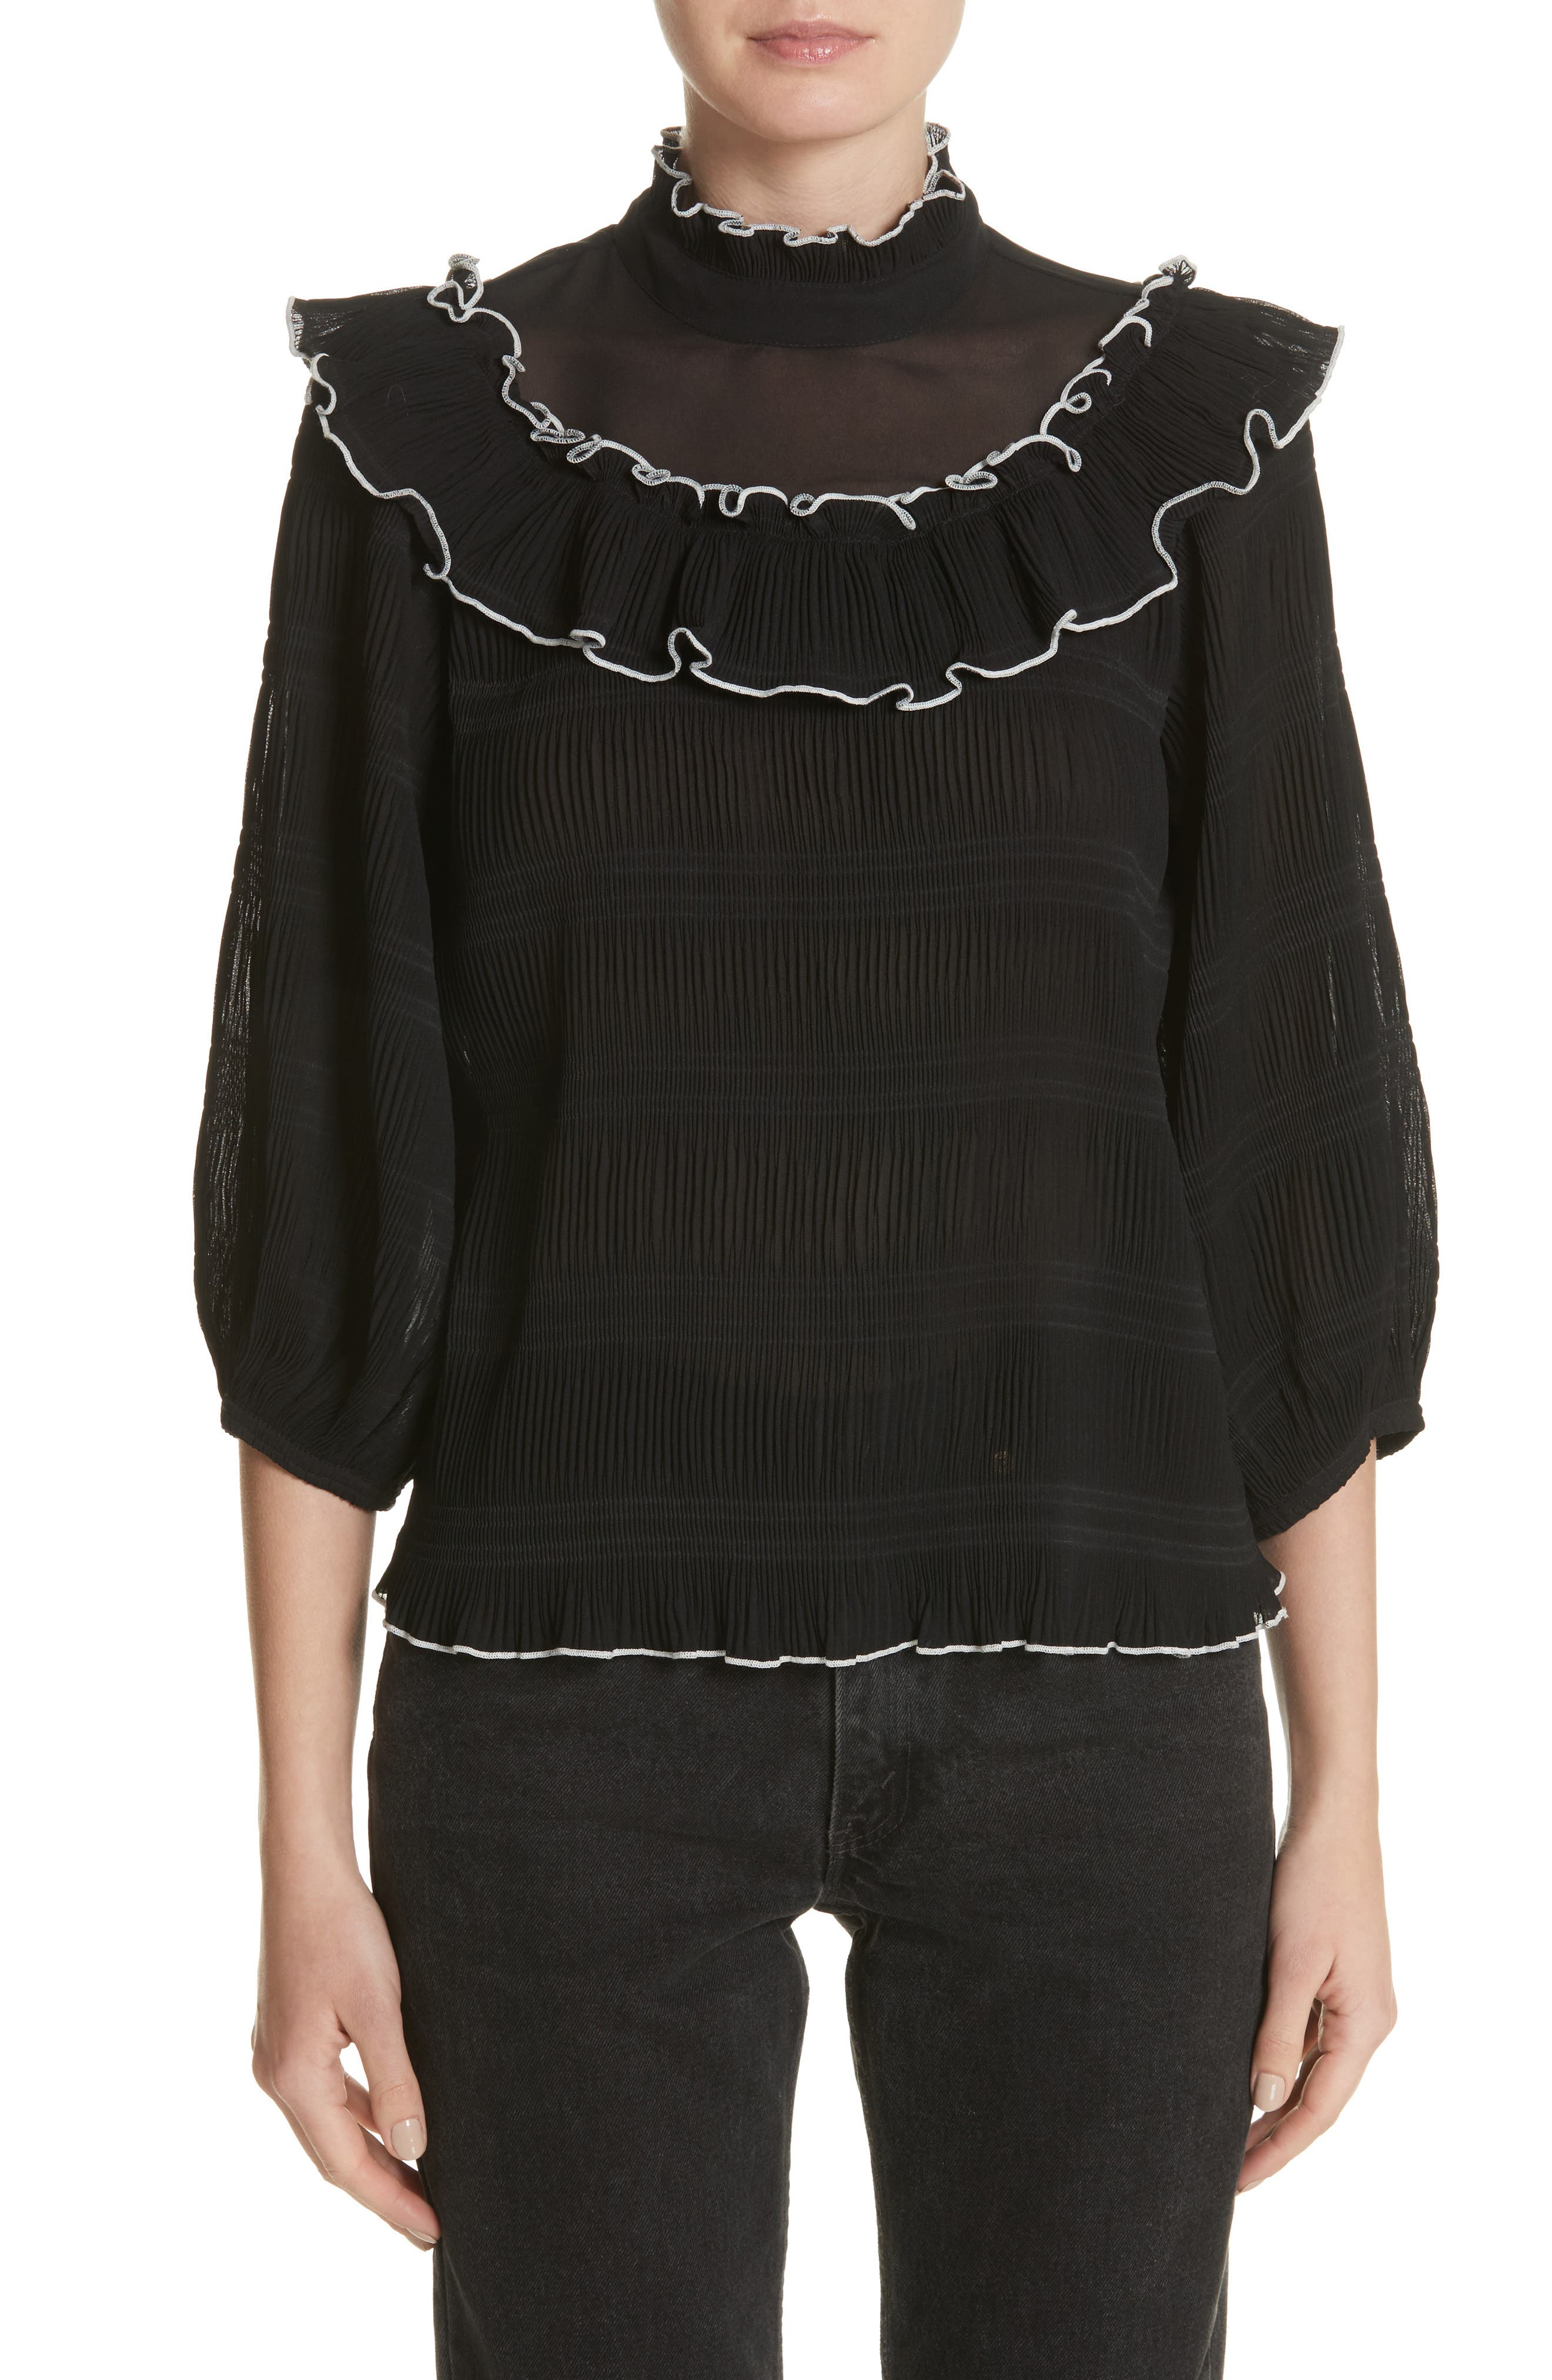 Lowell Ruffle Blouse,                         Main,                         color, 001